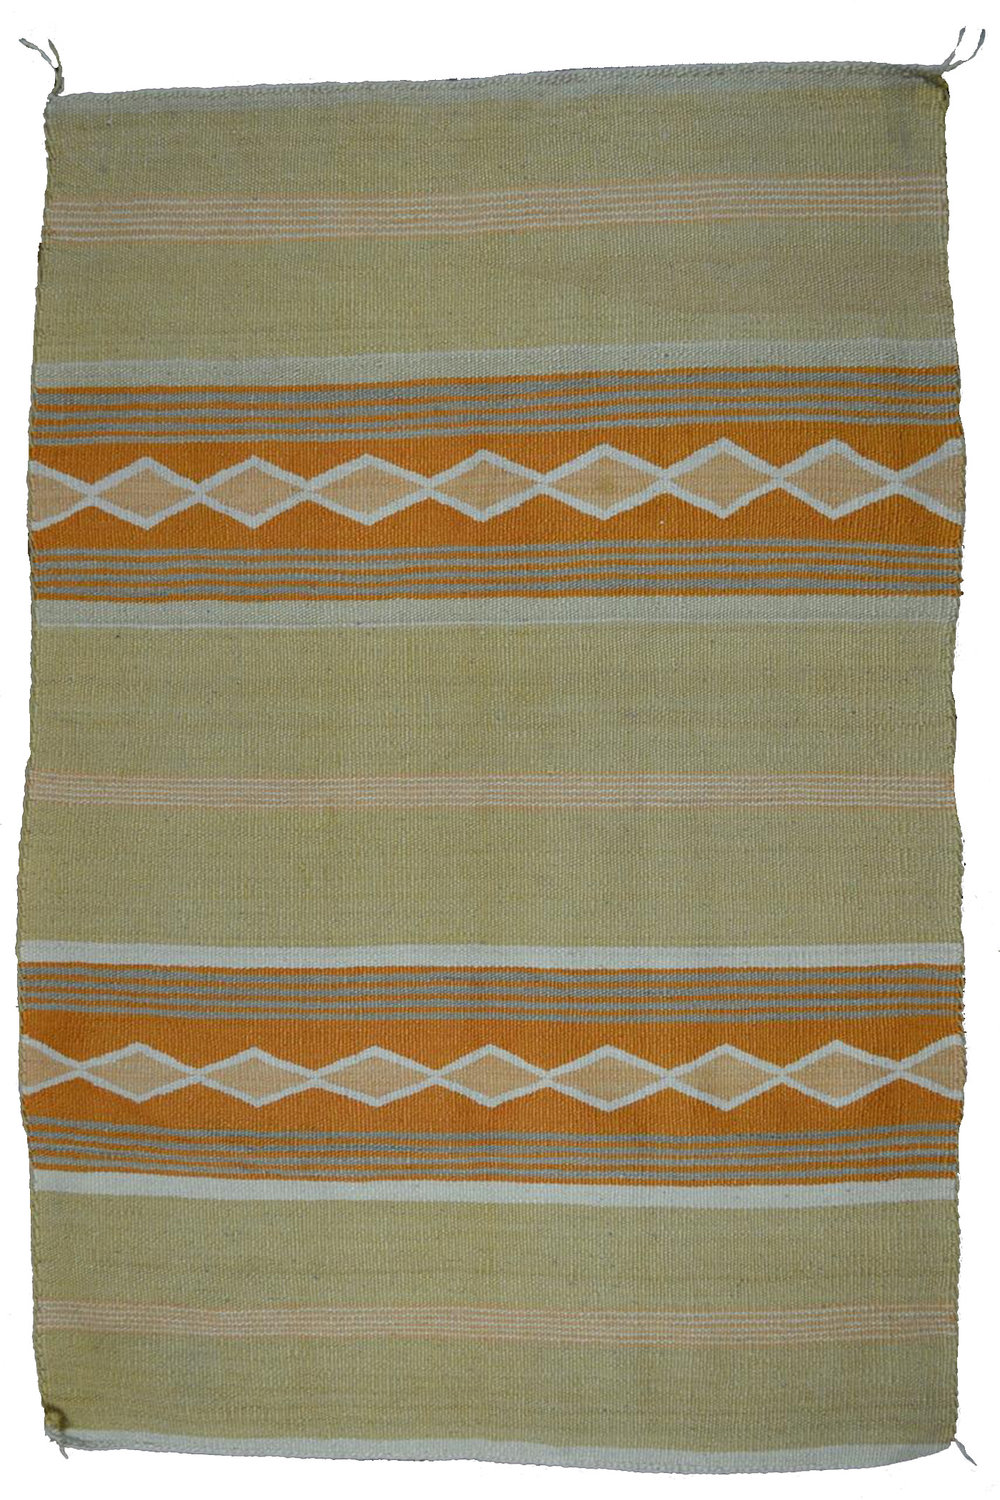 "Chinle Navajo Weaving   c. 1940s  40"" x 26"" // BV0127"